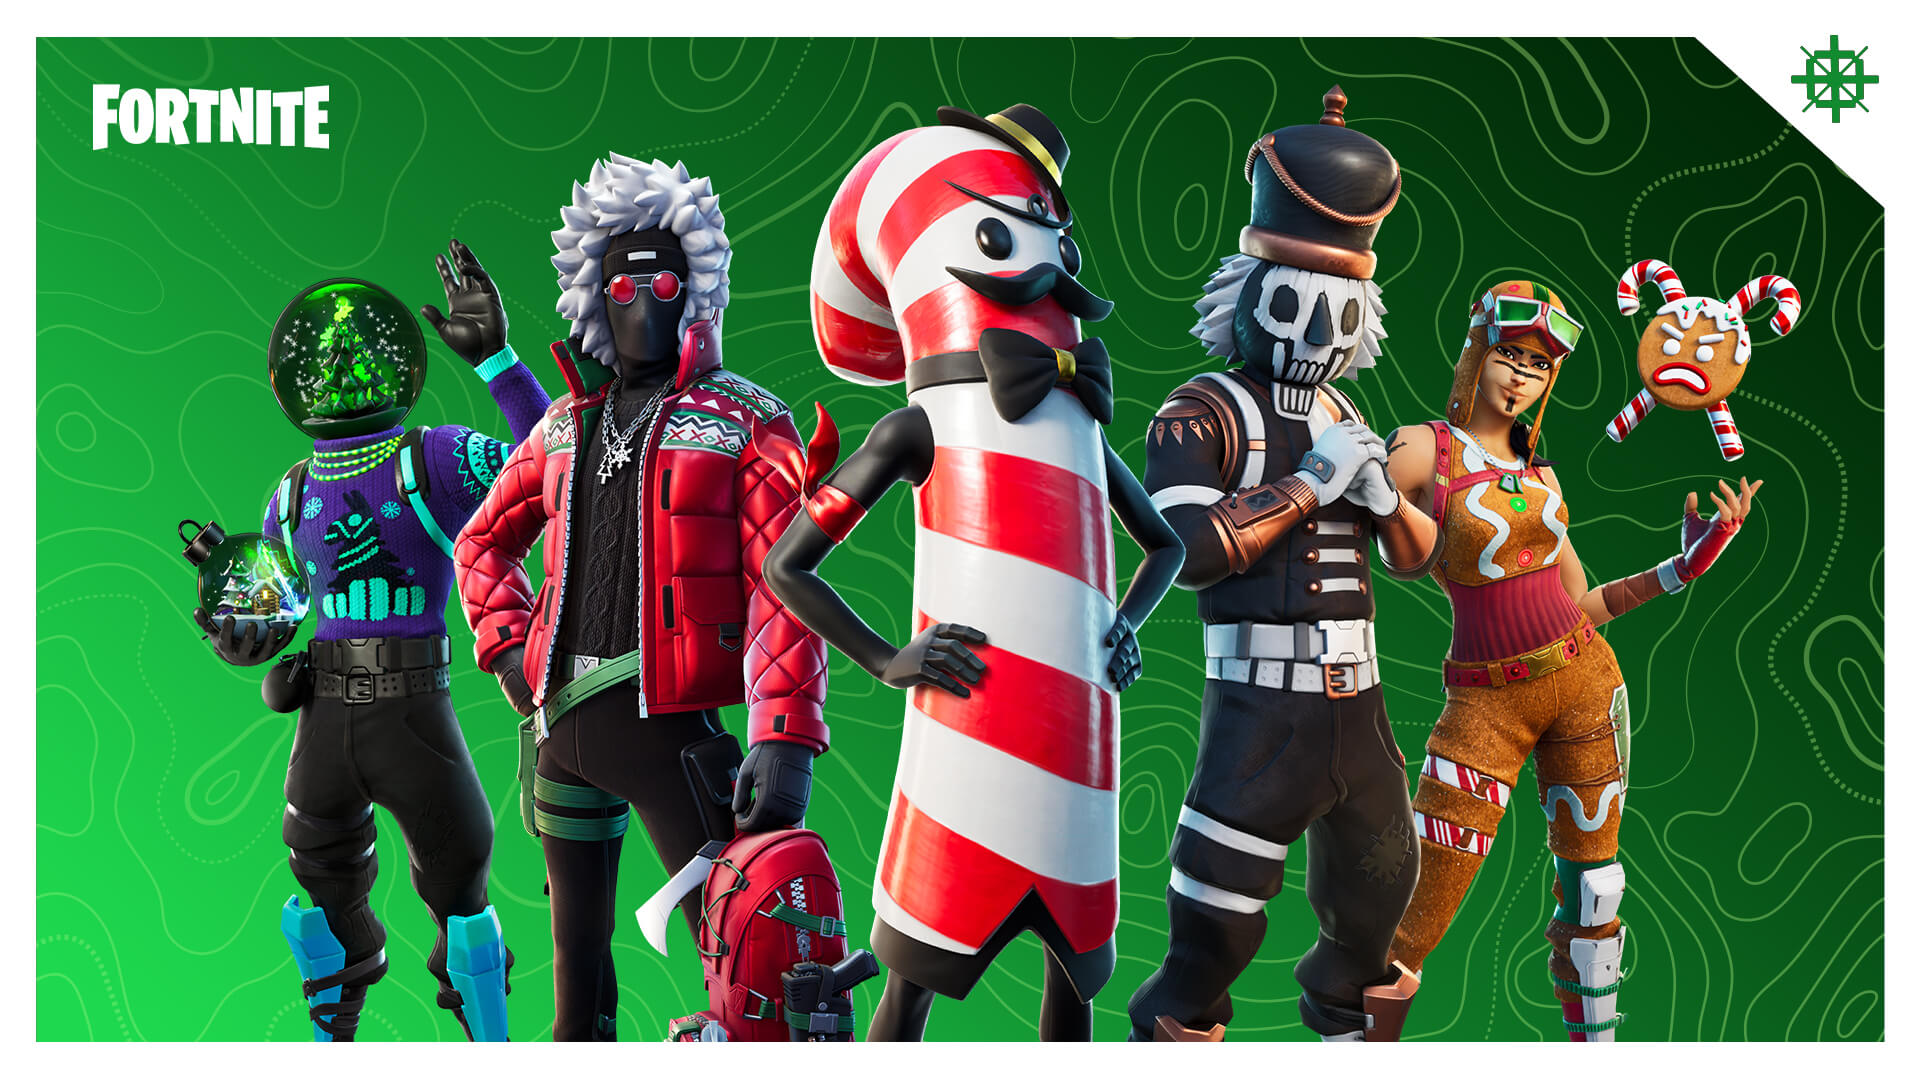 Fortnite Holiday Outfits